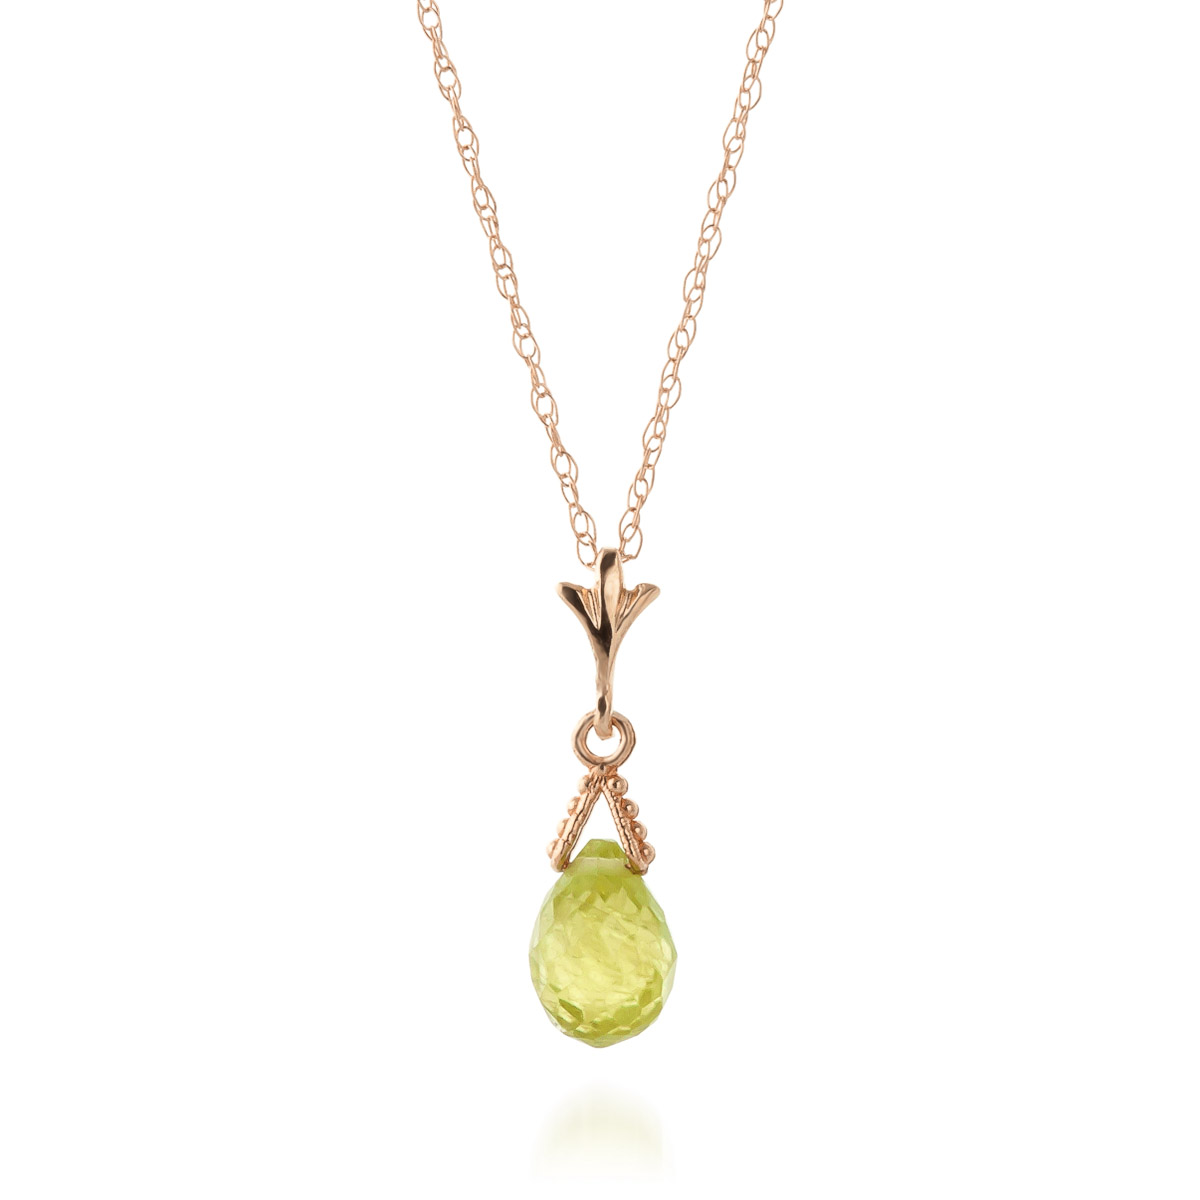 Peridot Droplet Briolette Pendant Necklace 2.5ct in 14K Rose Gold